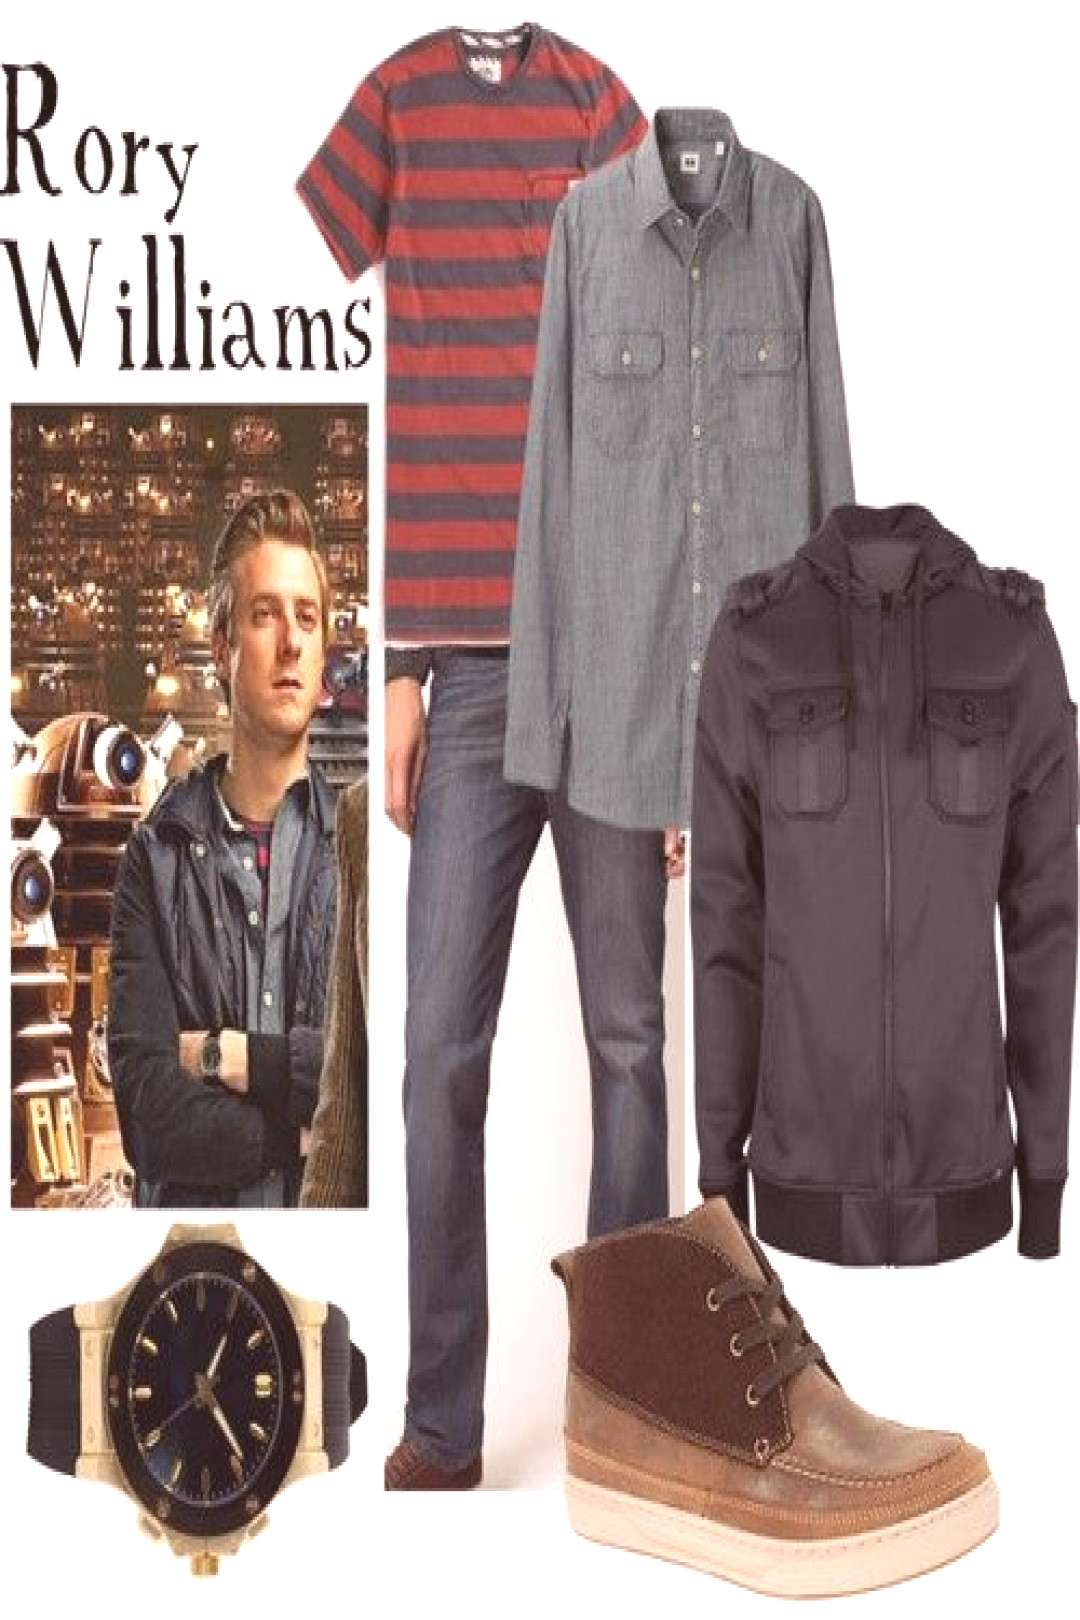 Rory Williams Outfit Doctor Who Rory williams outfit ,  rory williams outfit ,  tenue de rory willi